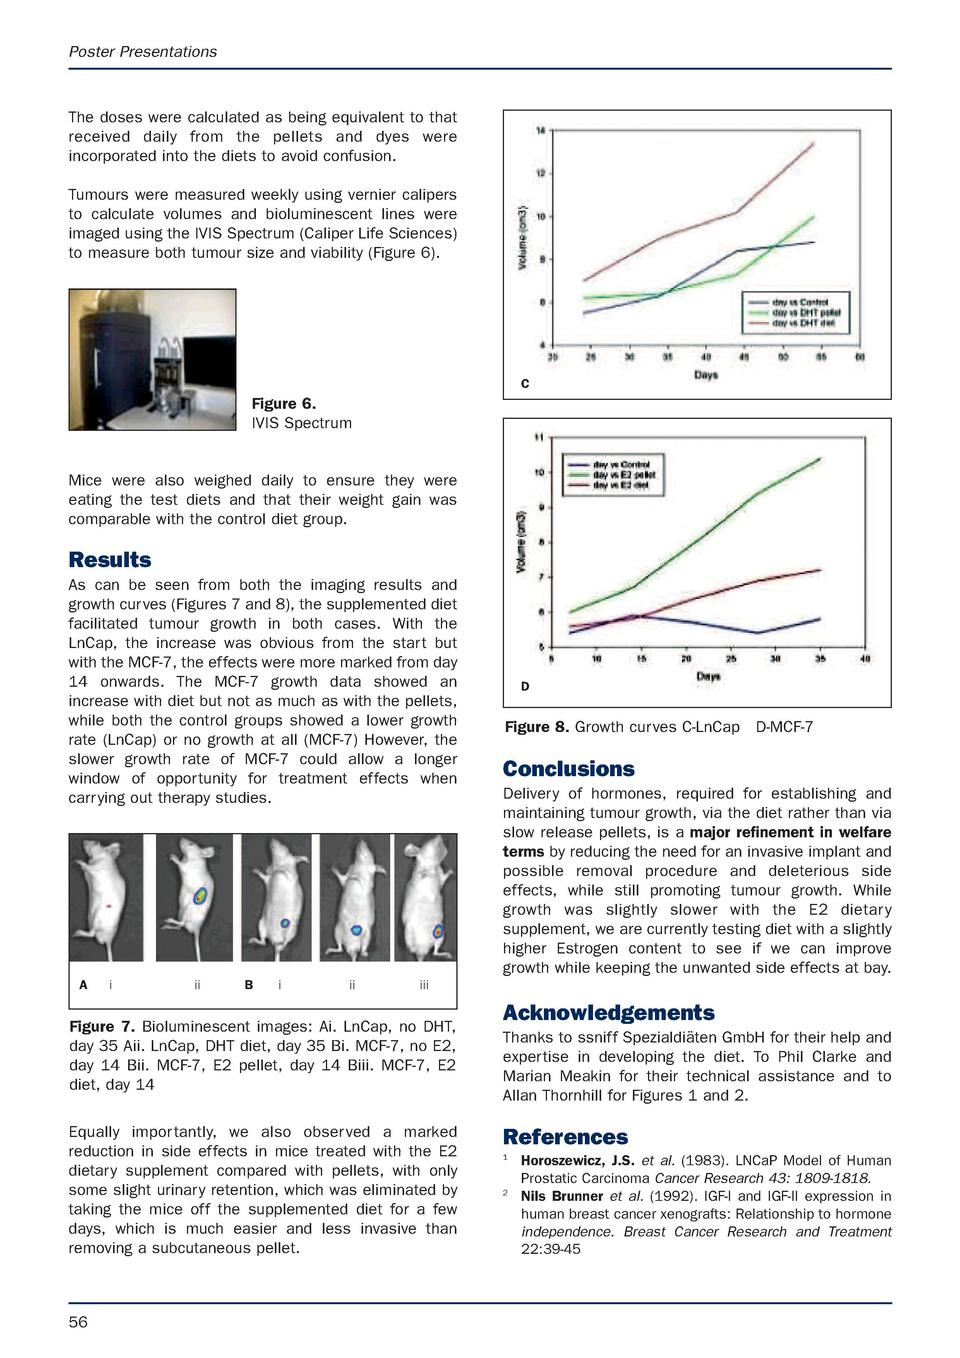 Poster Presentations  The doses were calculated as being equivalent to that received daily from the pellets and dyes were ...